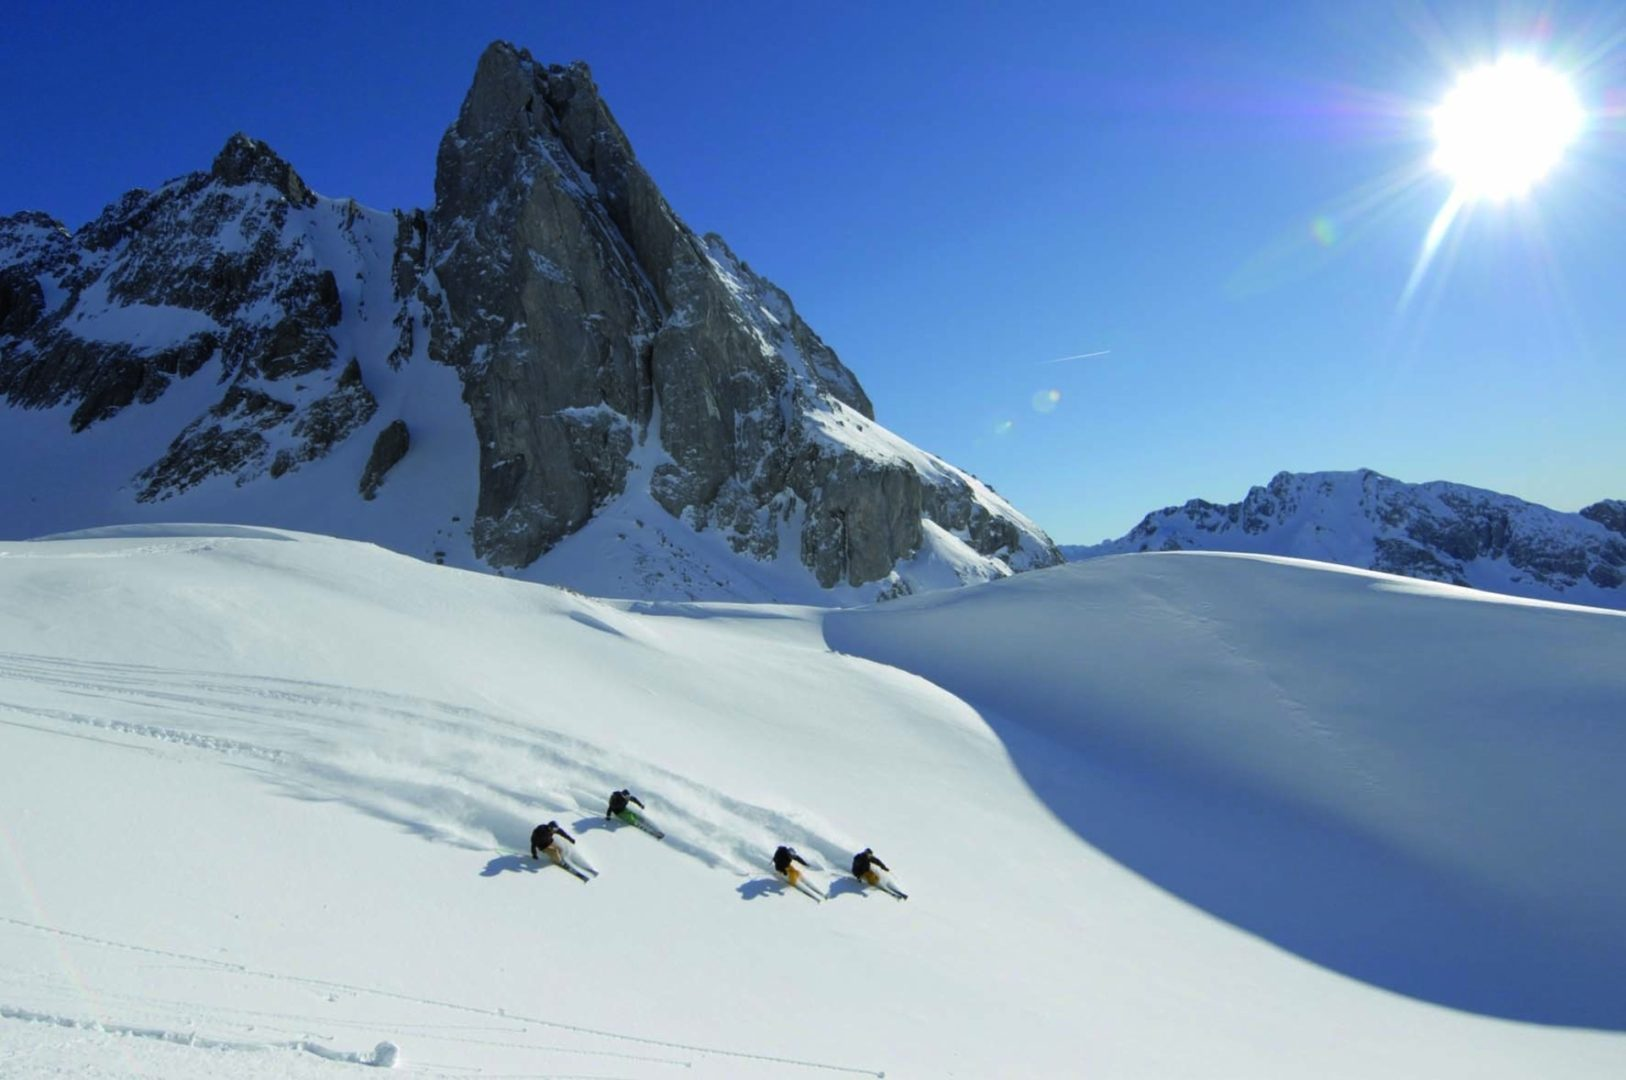 Move_Mountains_Luxury_Holidays_Austria_Tirol_Lech_am_Arlberg_Hotel_Gotthard_Skiiers_Lech_Winter